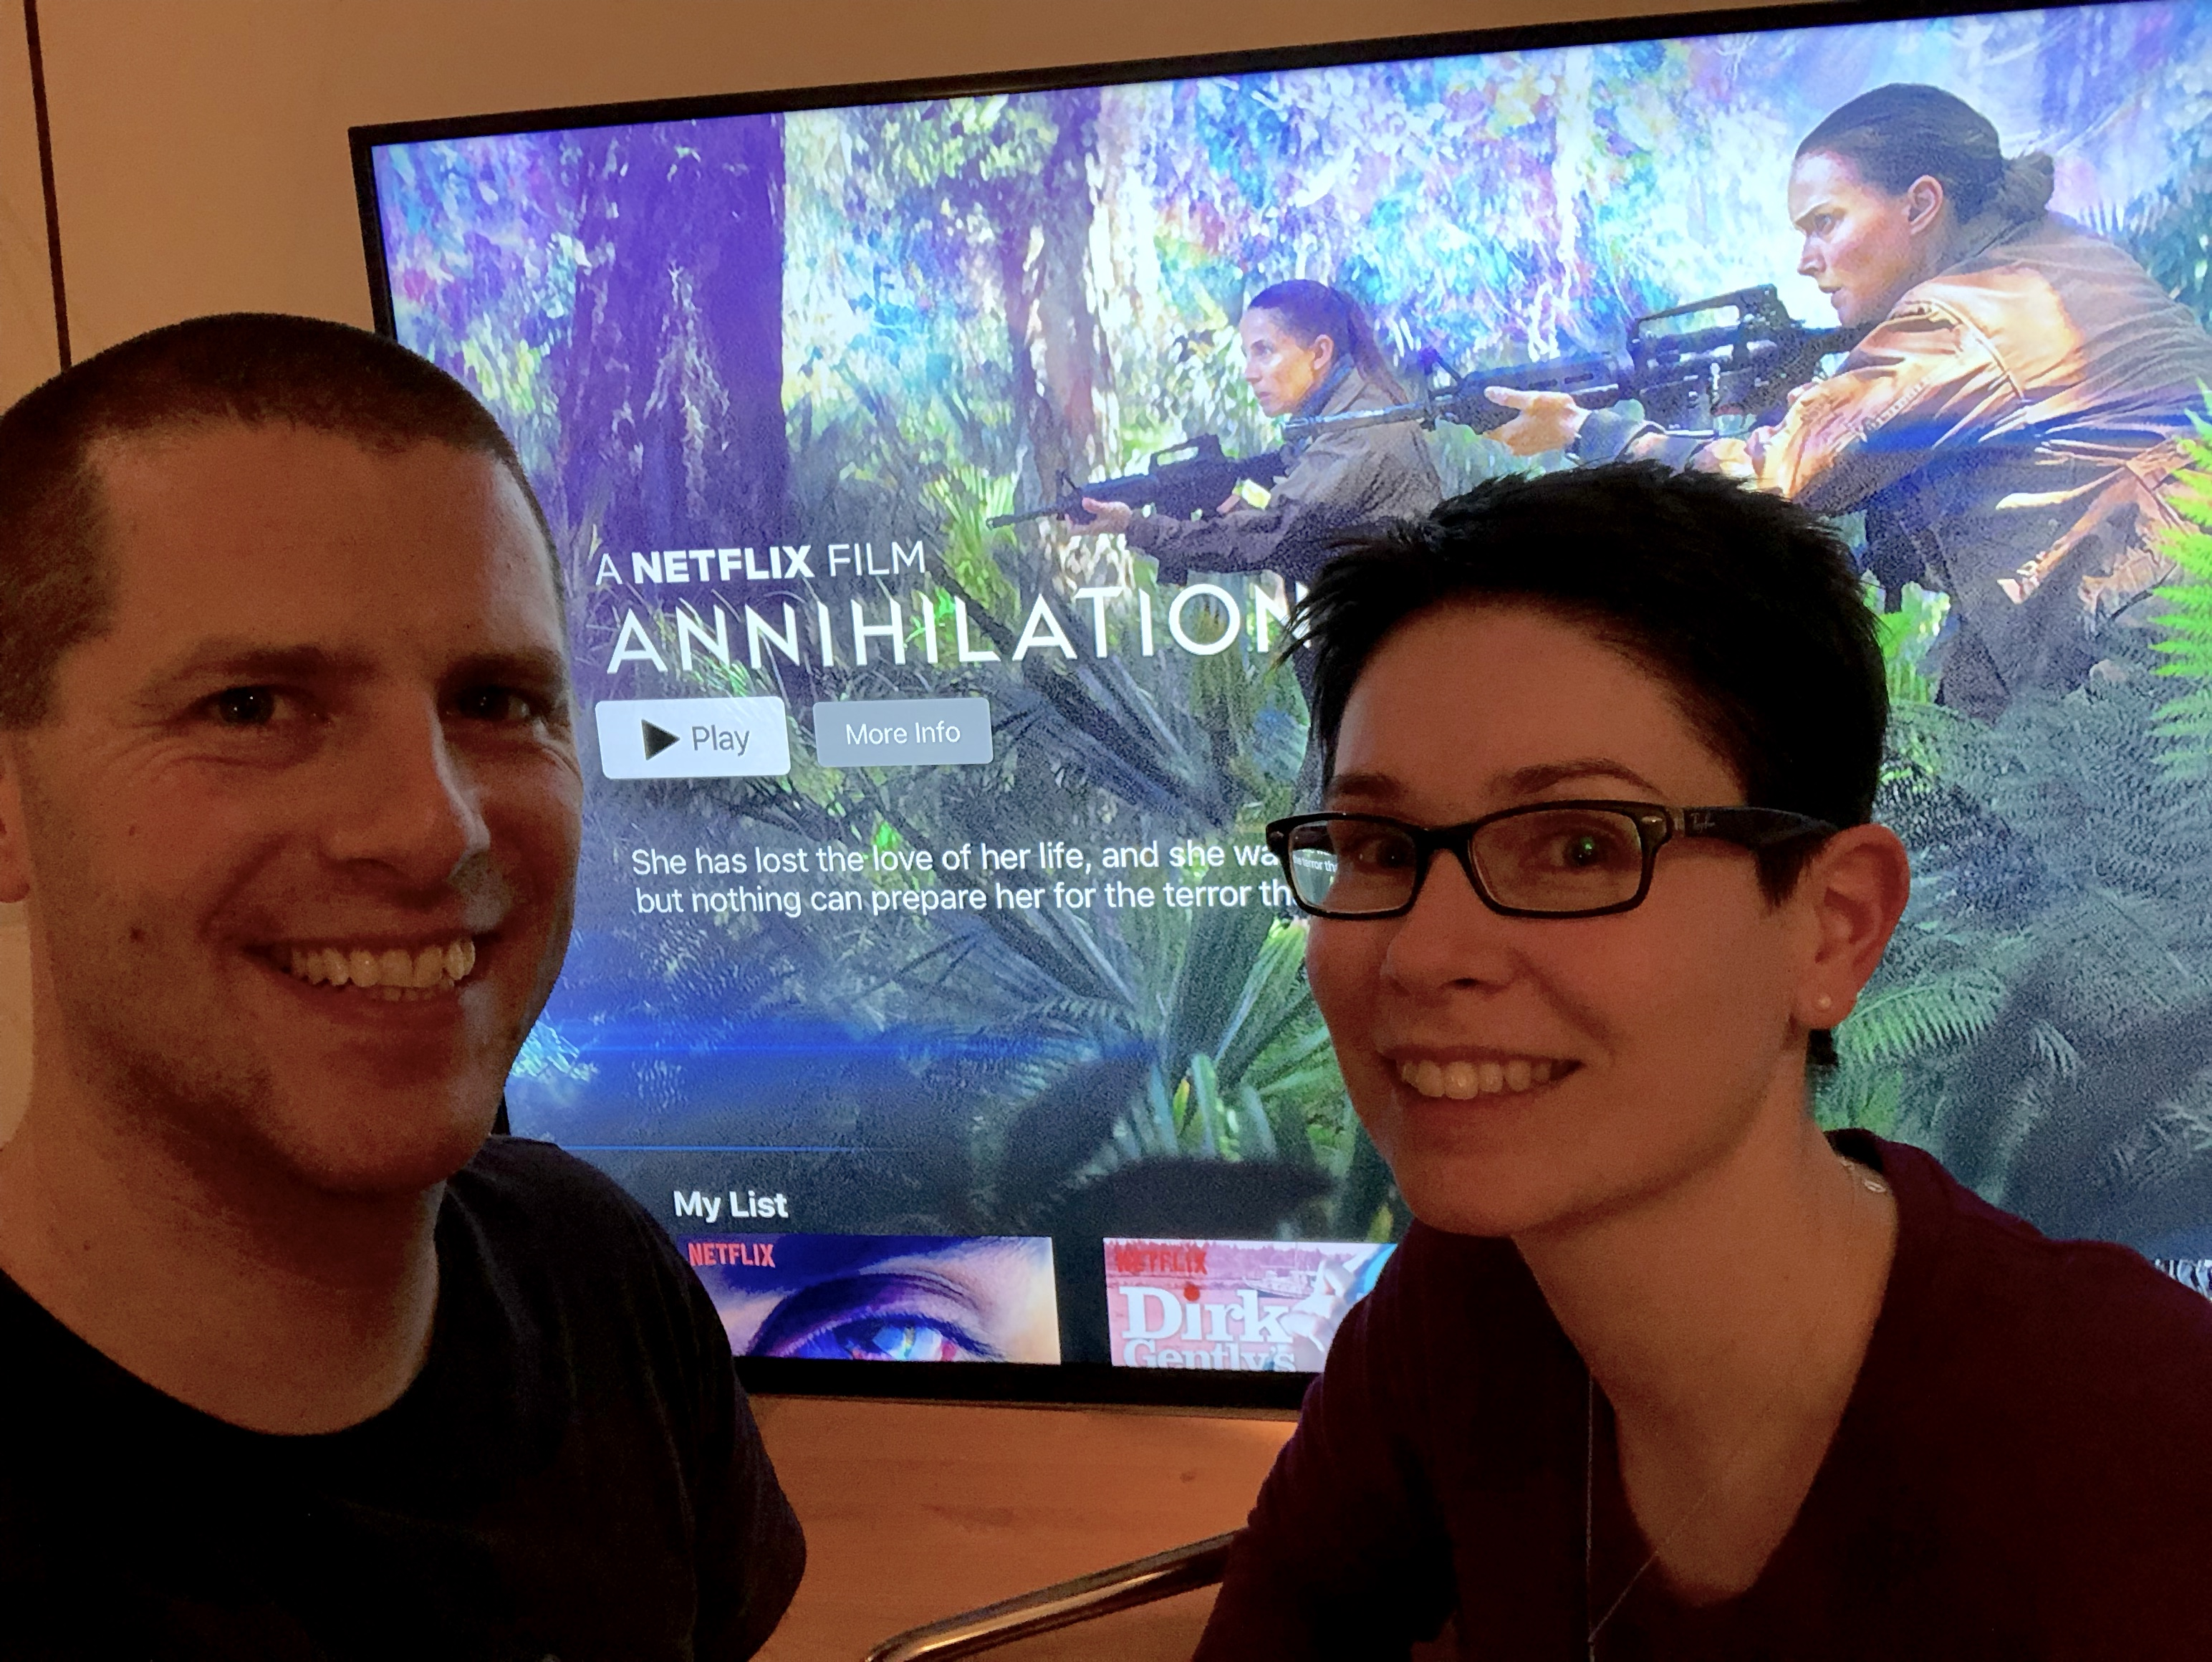 SFBRP #362 - Annihilation - The Novel vs The Movie - Southern Reach #1